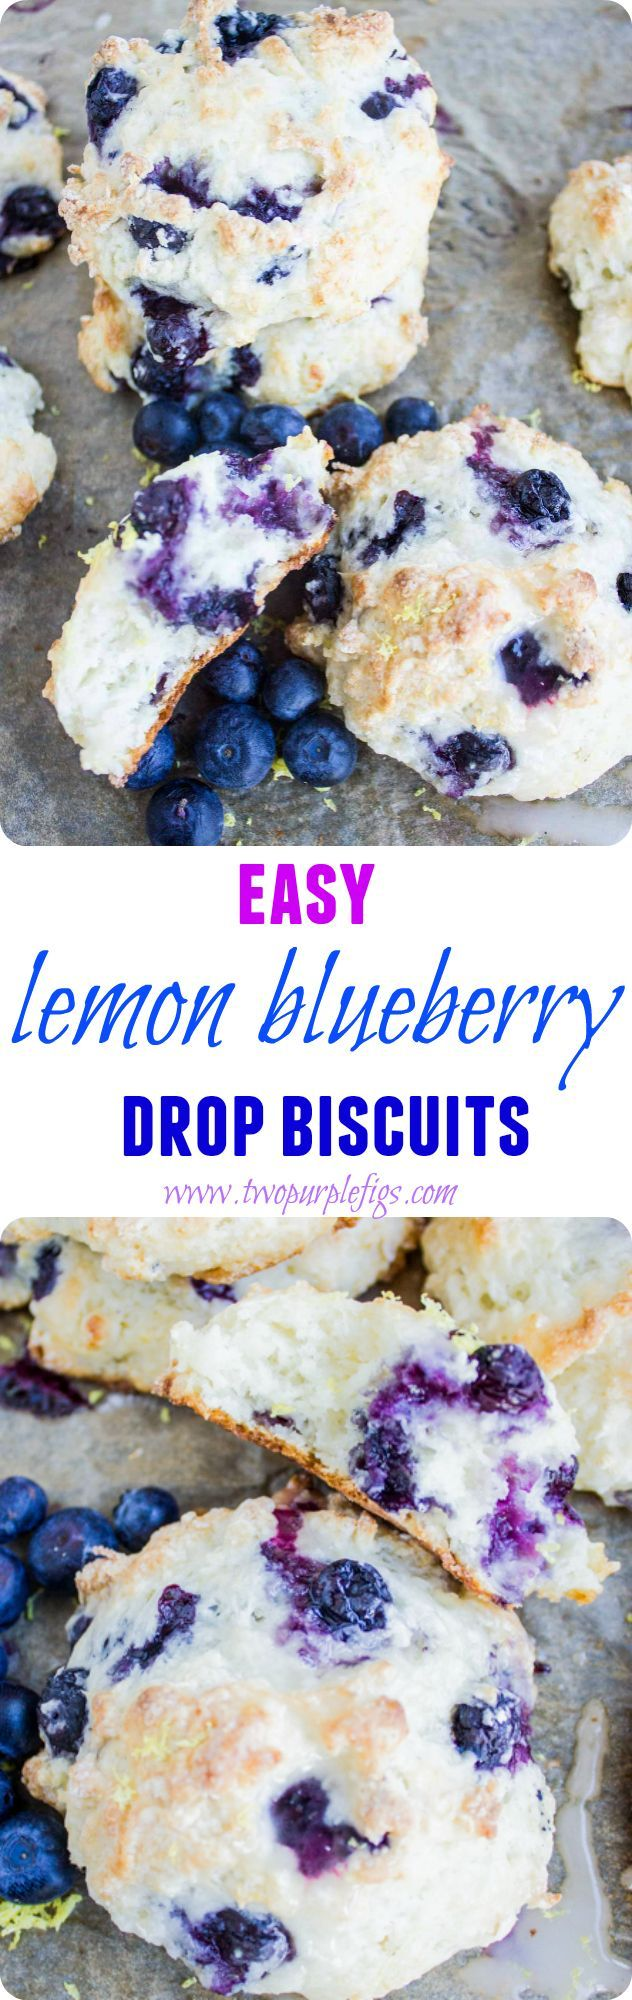 What's a cross between muffin tops and fluffy melt in your mouth biscuits? These easy, really Easy Lemon Blueberry Drop Biscuits! A last min crowd pleaser every time. www.twopurplefigs.com